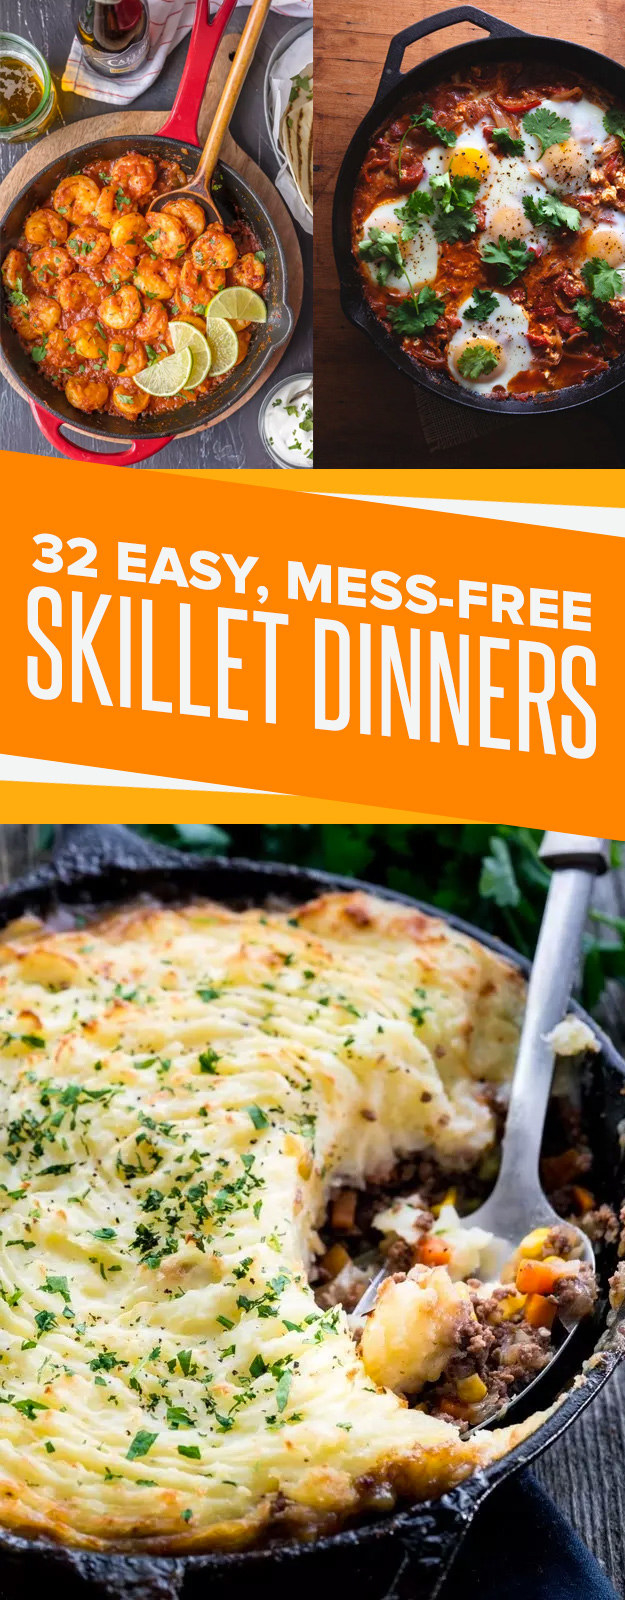 32 easy and mess free skillet recipes by buzzfeed little info cue andrew richardbuzzfeed forumfinder Gallery